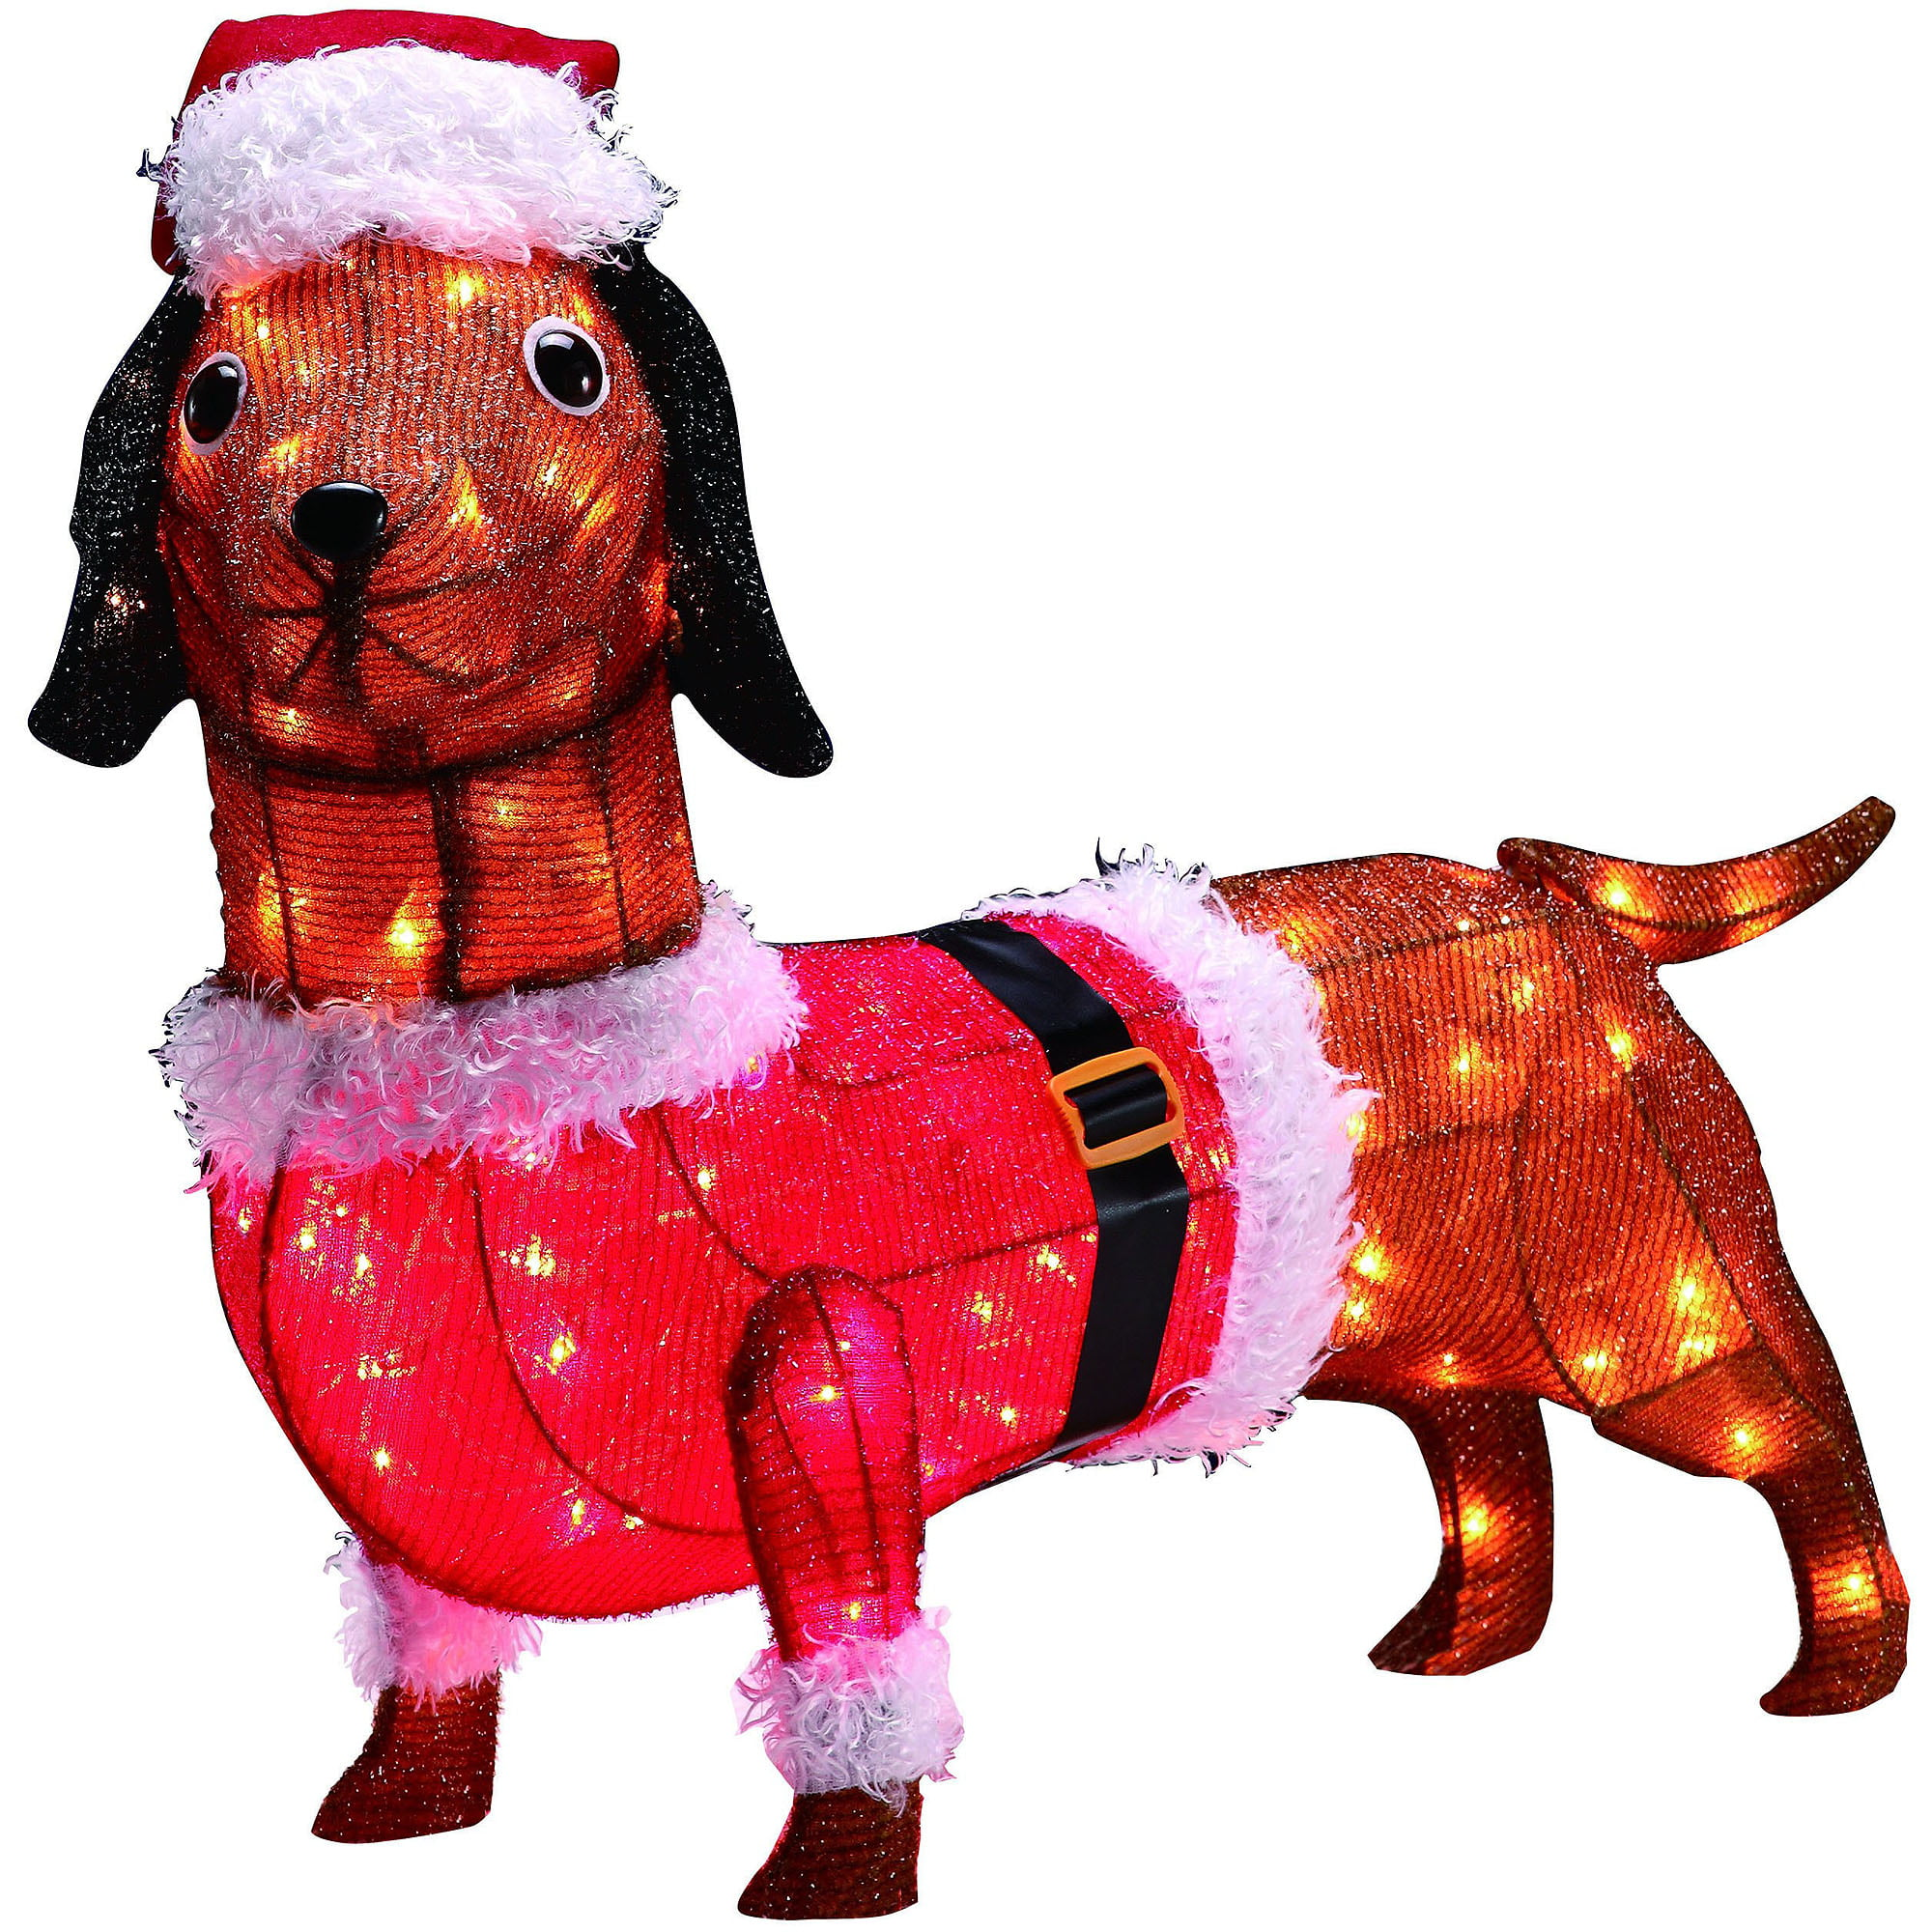 holiday time 30 tinsel dascshund dog light sculpture walmartcom - Outdoor Lighted Dog Christmas Decorations